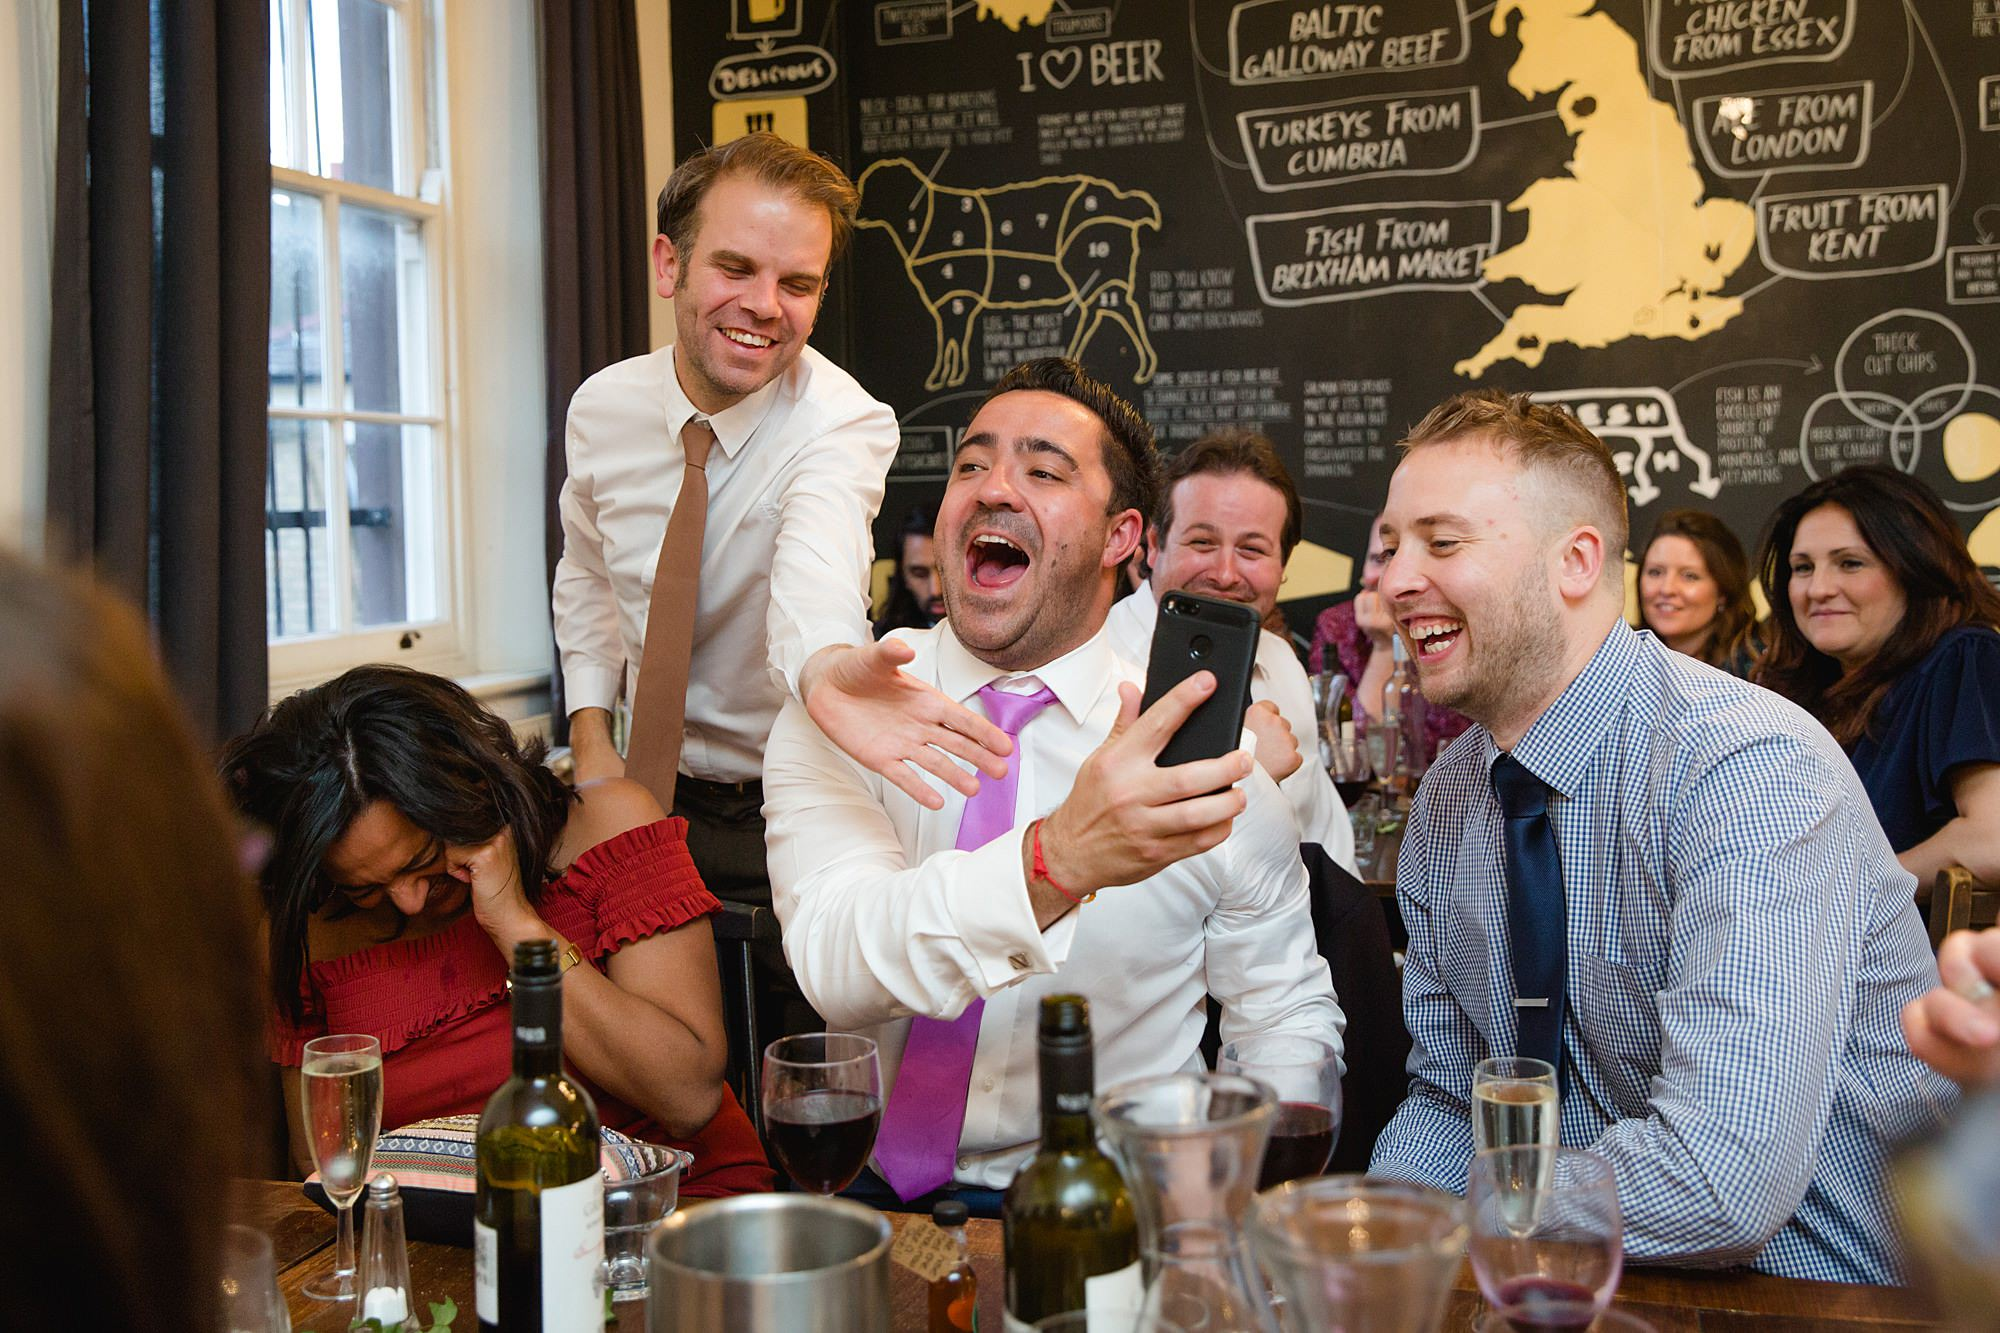 Prince albert camden wedding guests laughing at selfies